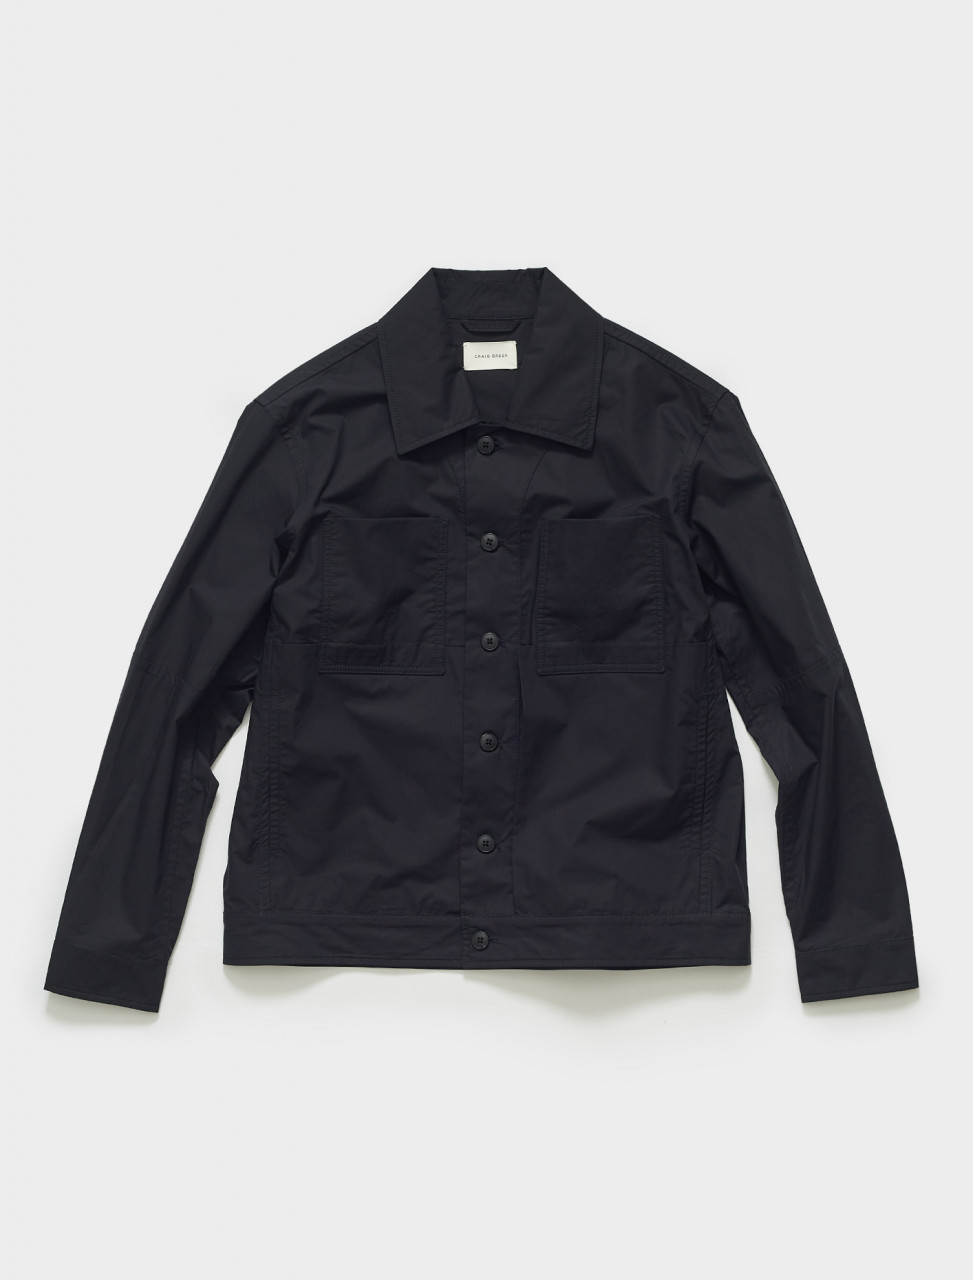 CGSS21CWOJKT13 CRAIG GREEN WORKER JACKET IN BLACK